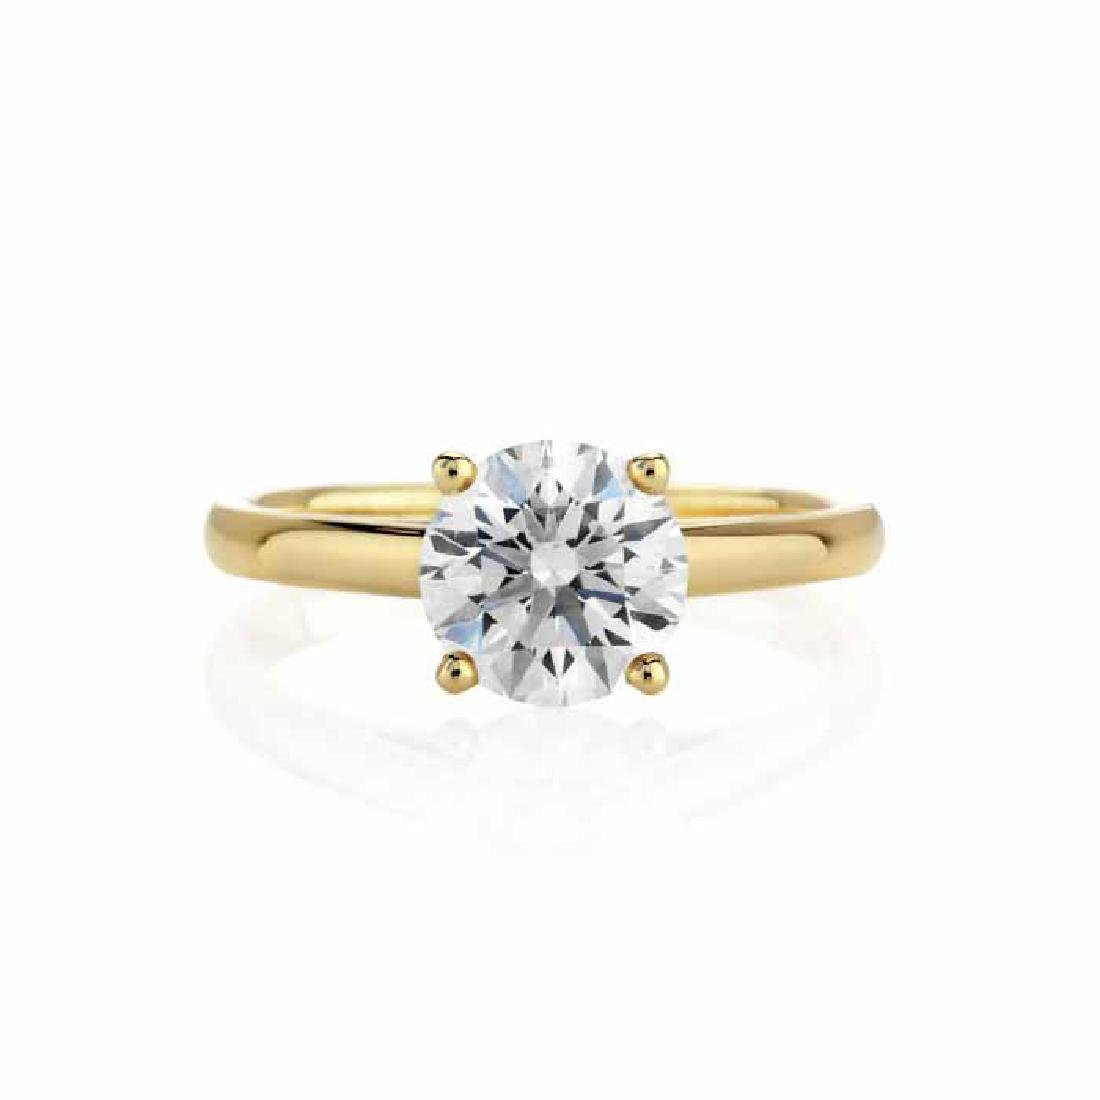 CERTIFIED 0.9 CTW I/SI2 ROUND DIAMOND SOLITAIRE RING IN